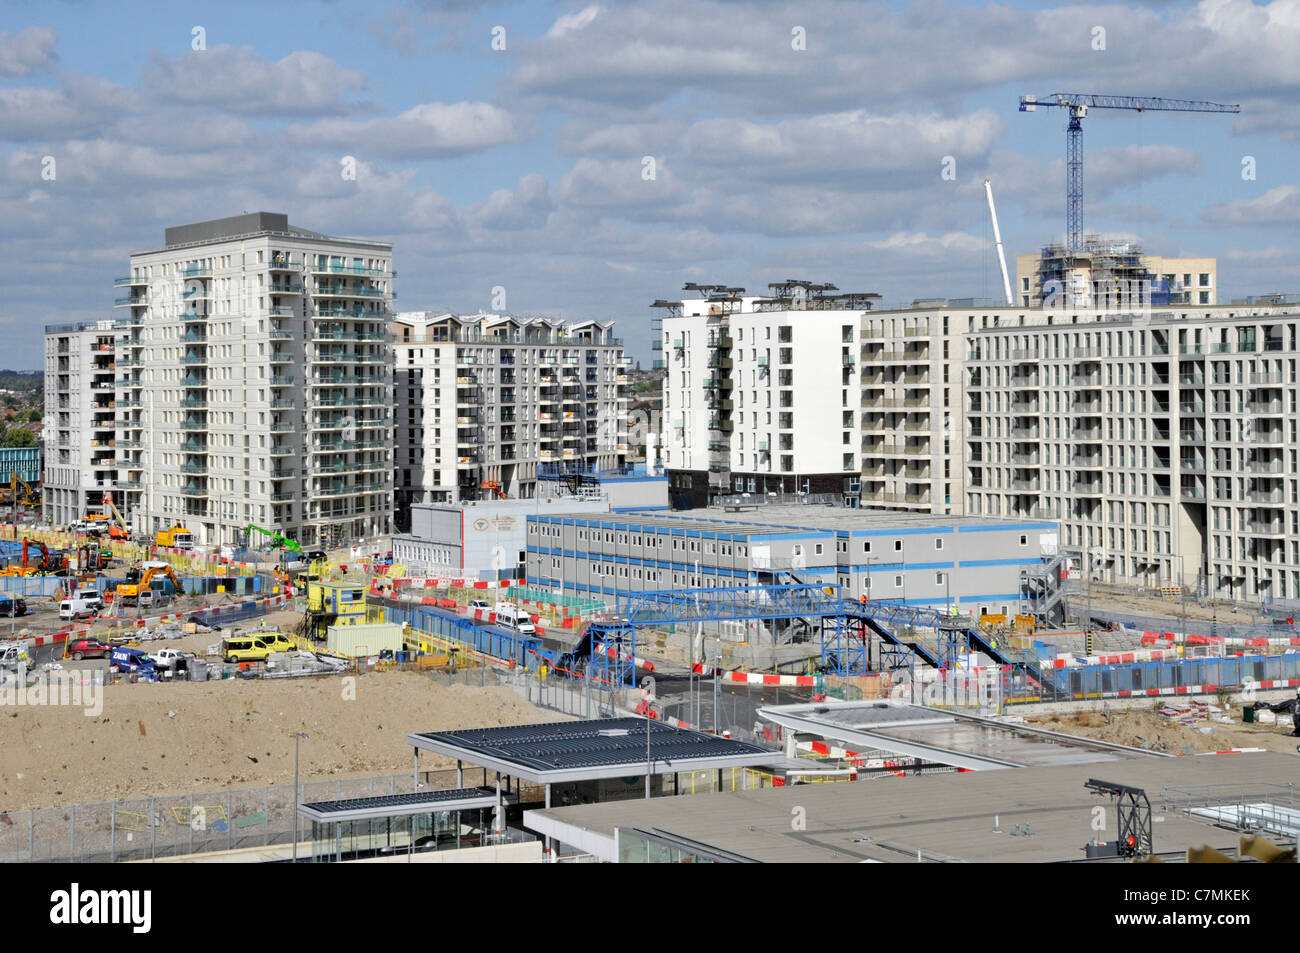 Part of the London 2012 Olympic village construction site with temporary site offices - Stock Image